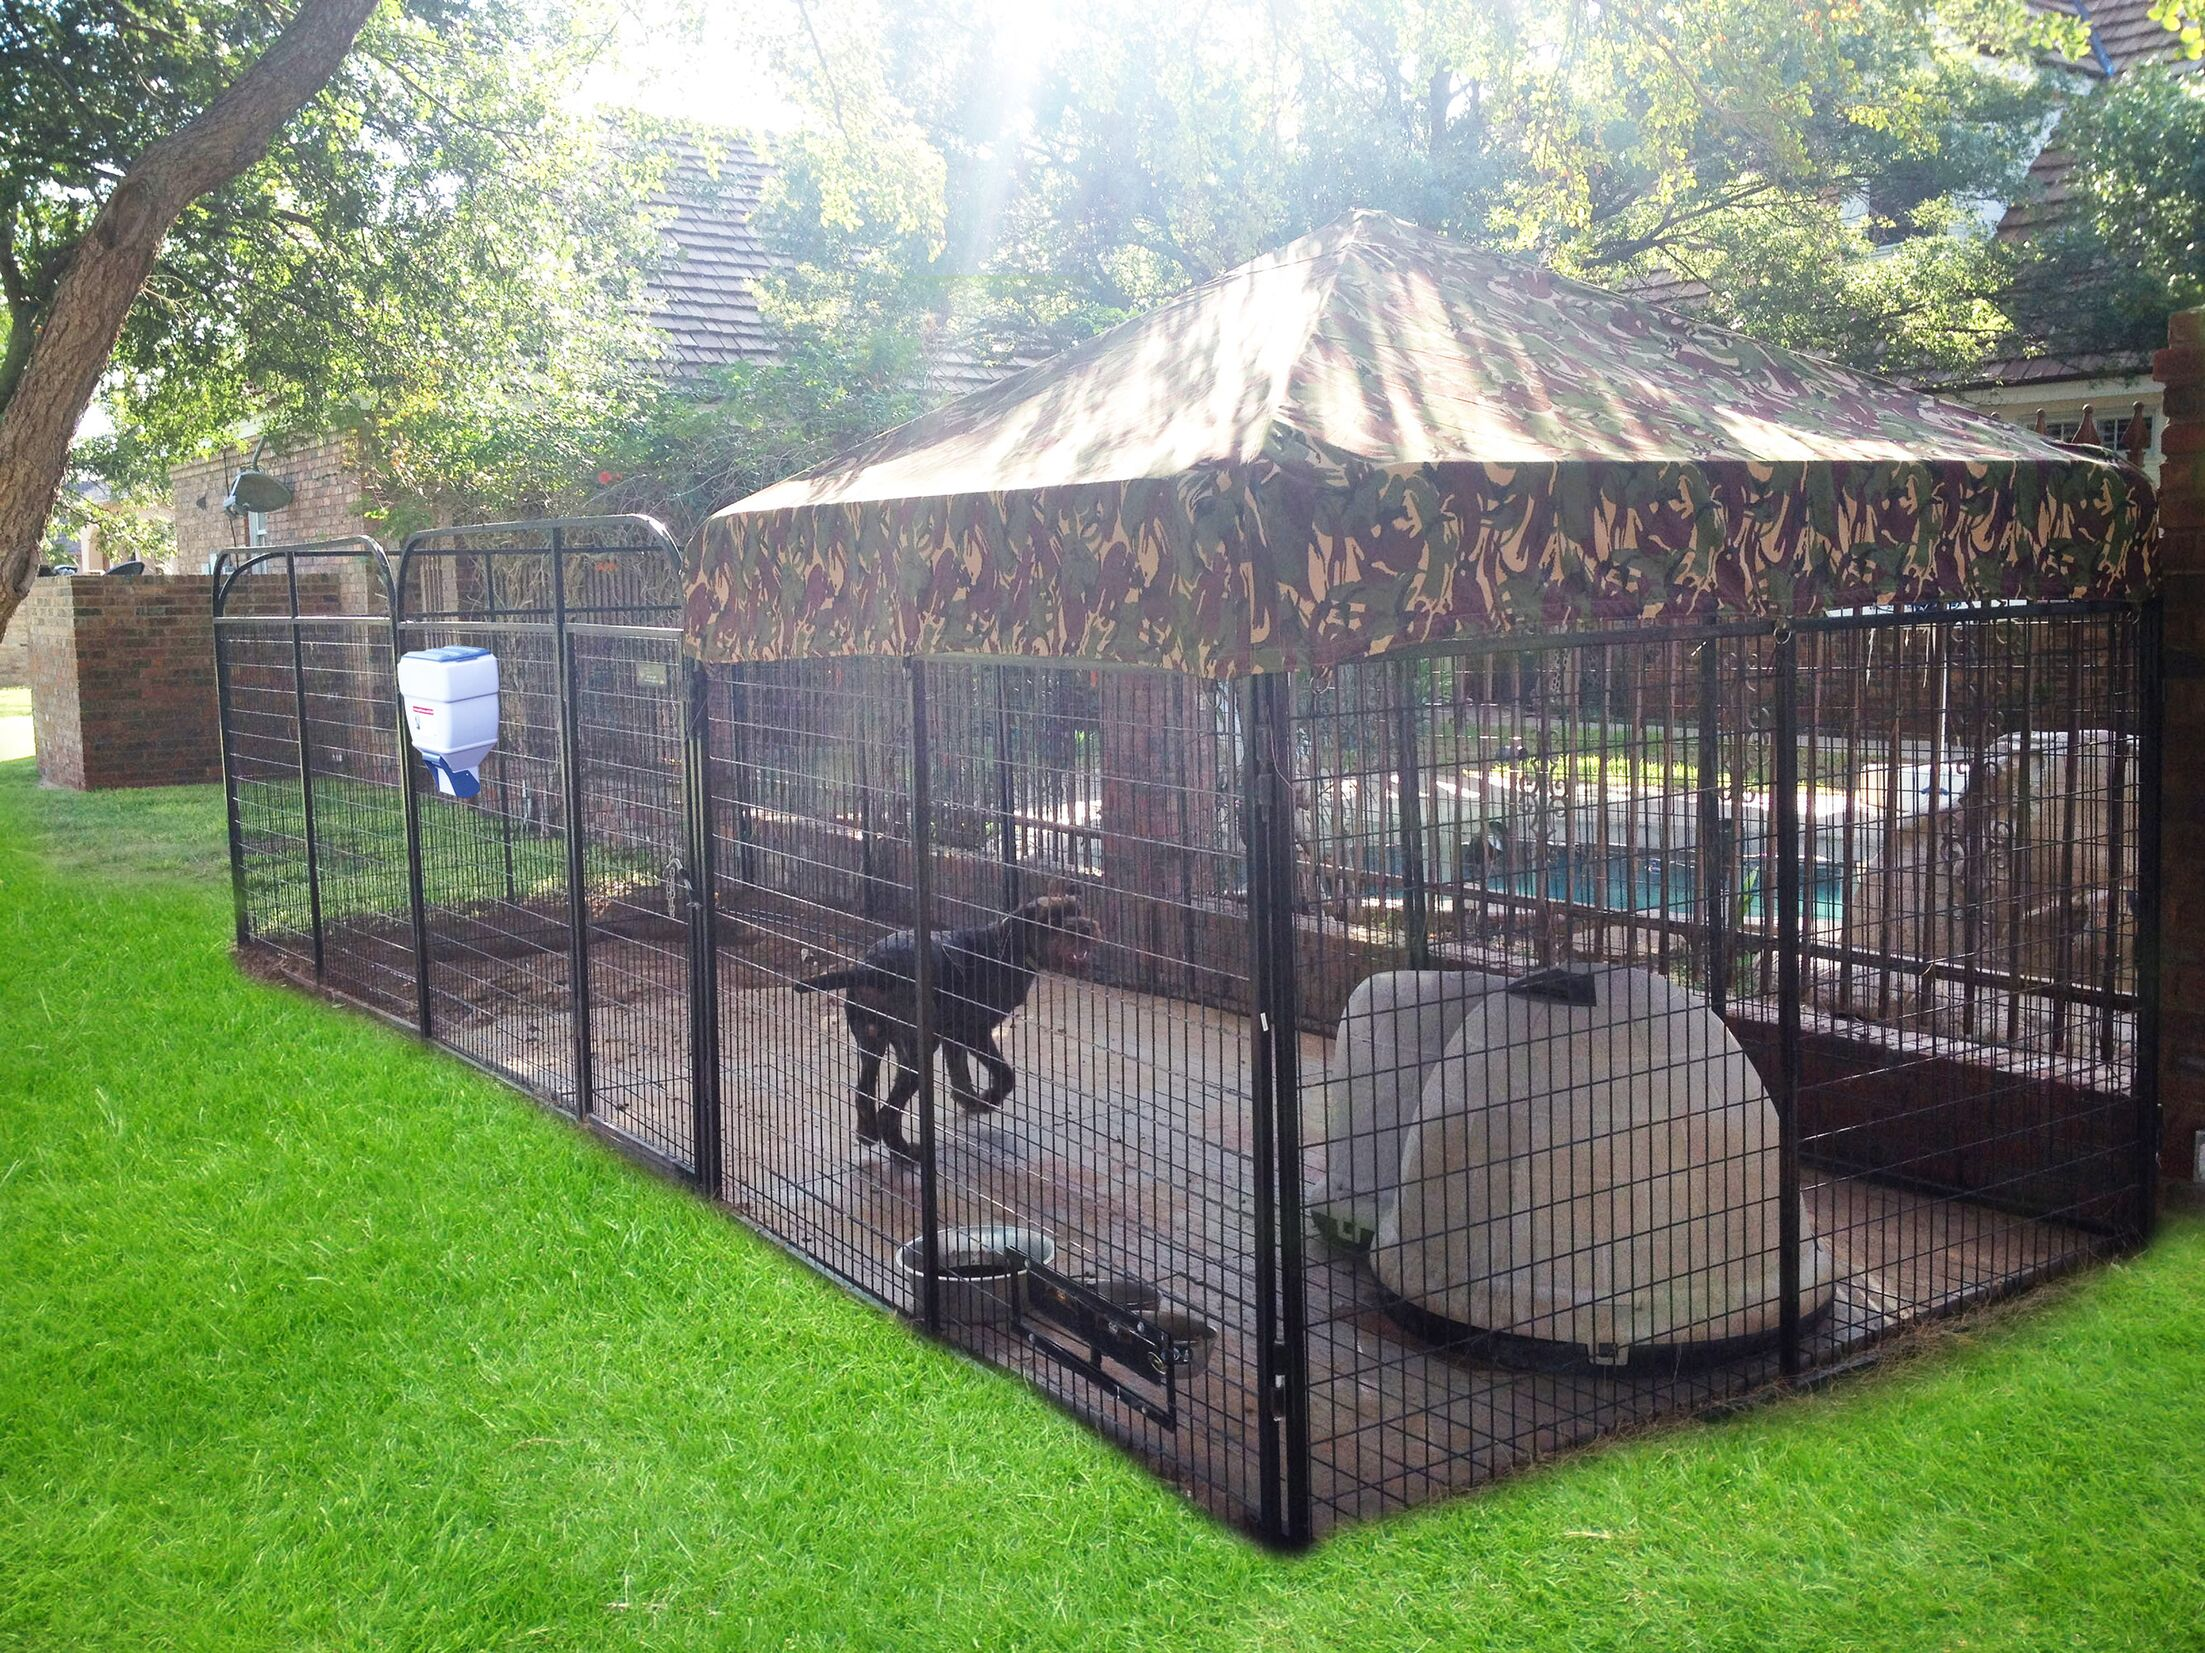 Brendan Expanded Metal Yard Kennel Color: Camouflage, Size: 72